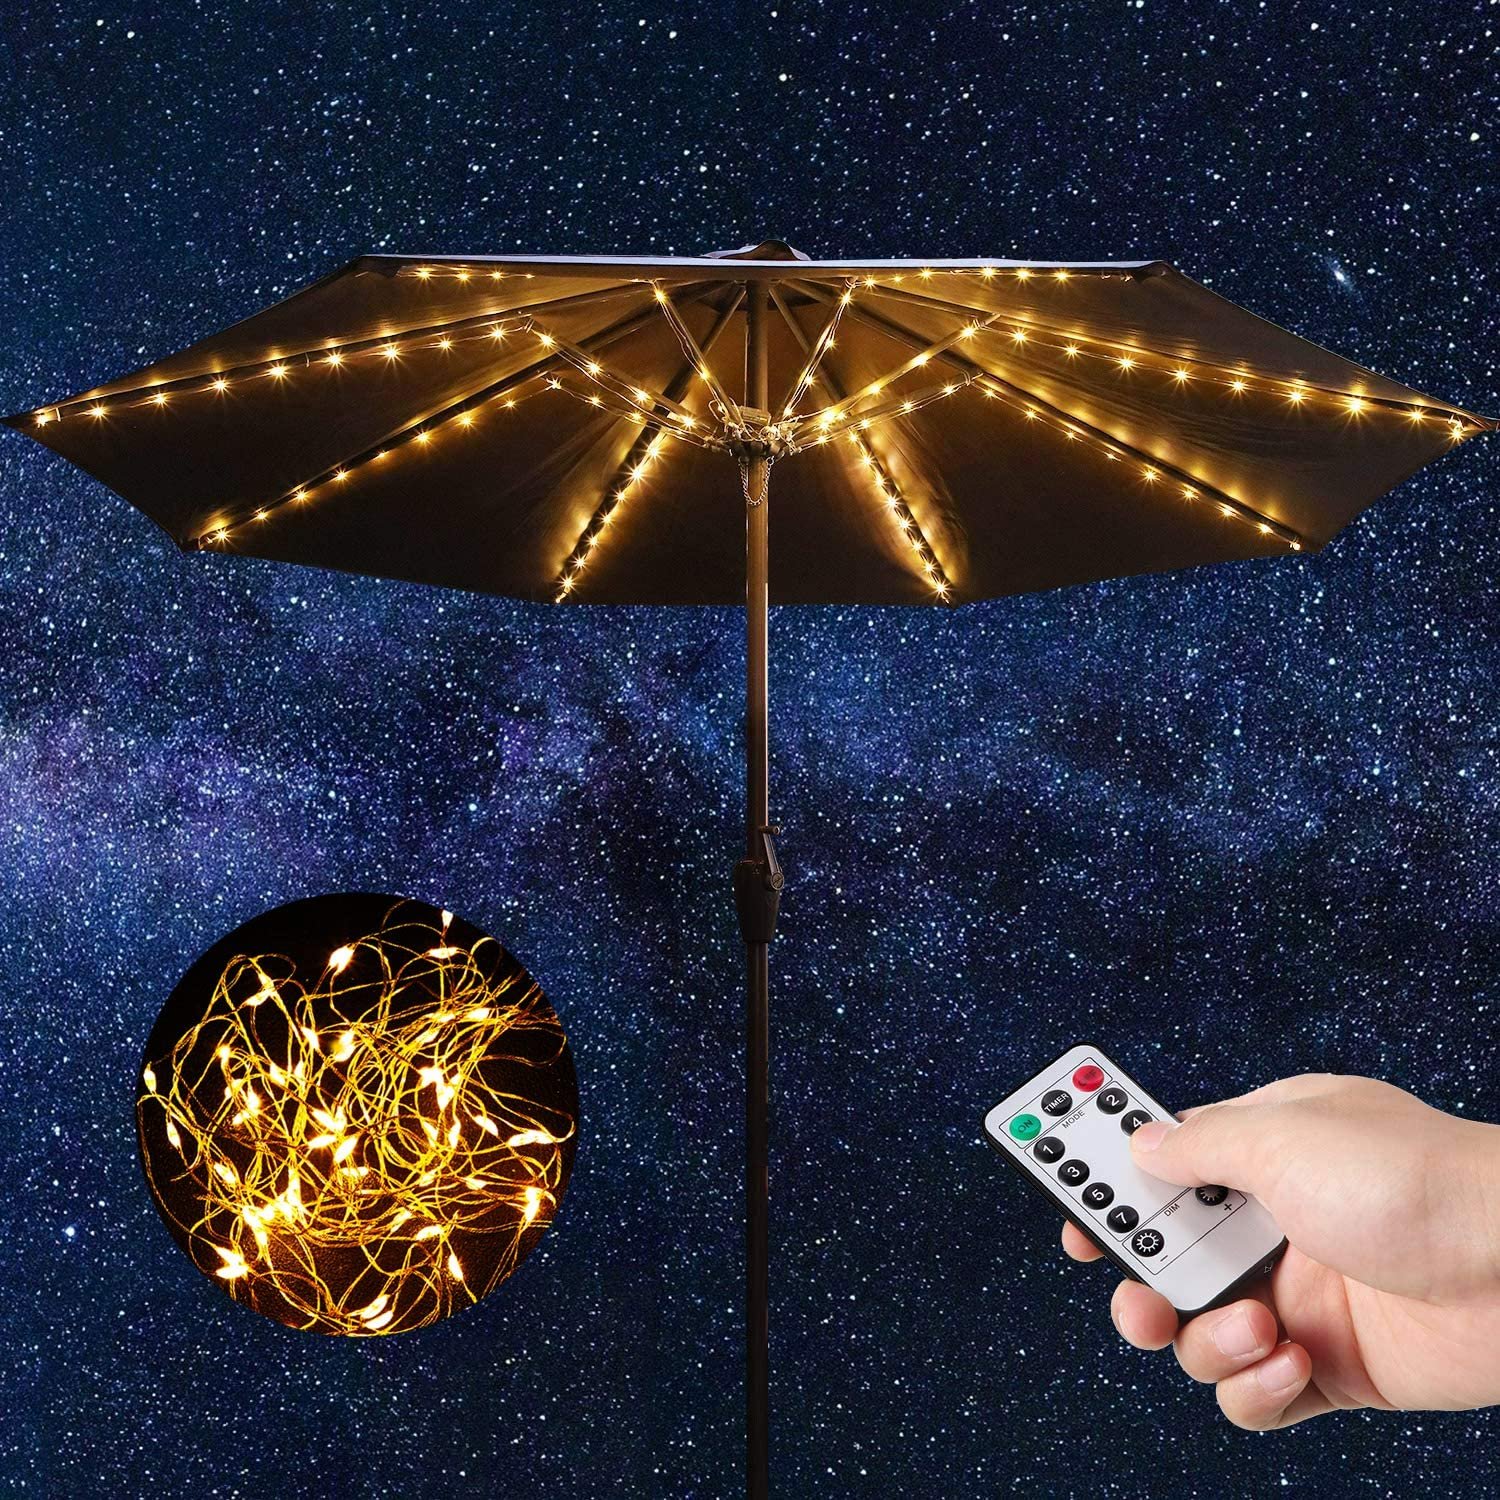 Patio Umbrella Lights Warm White String Lights with Remote Control 104 Bright LED 8 Modes Wireless Battery Operated Waterproof Outdoor Pole Lights for Patio Umbrellas Camping Tents Garden Decoration